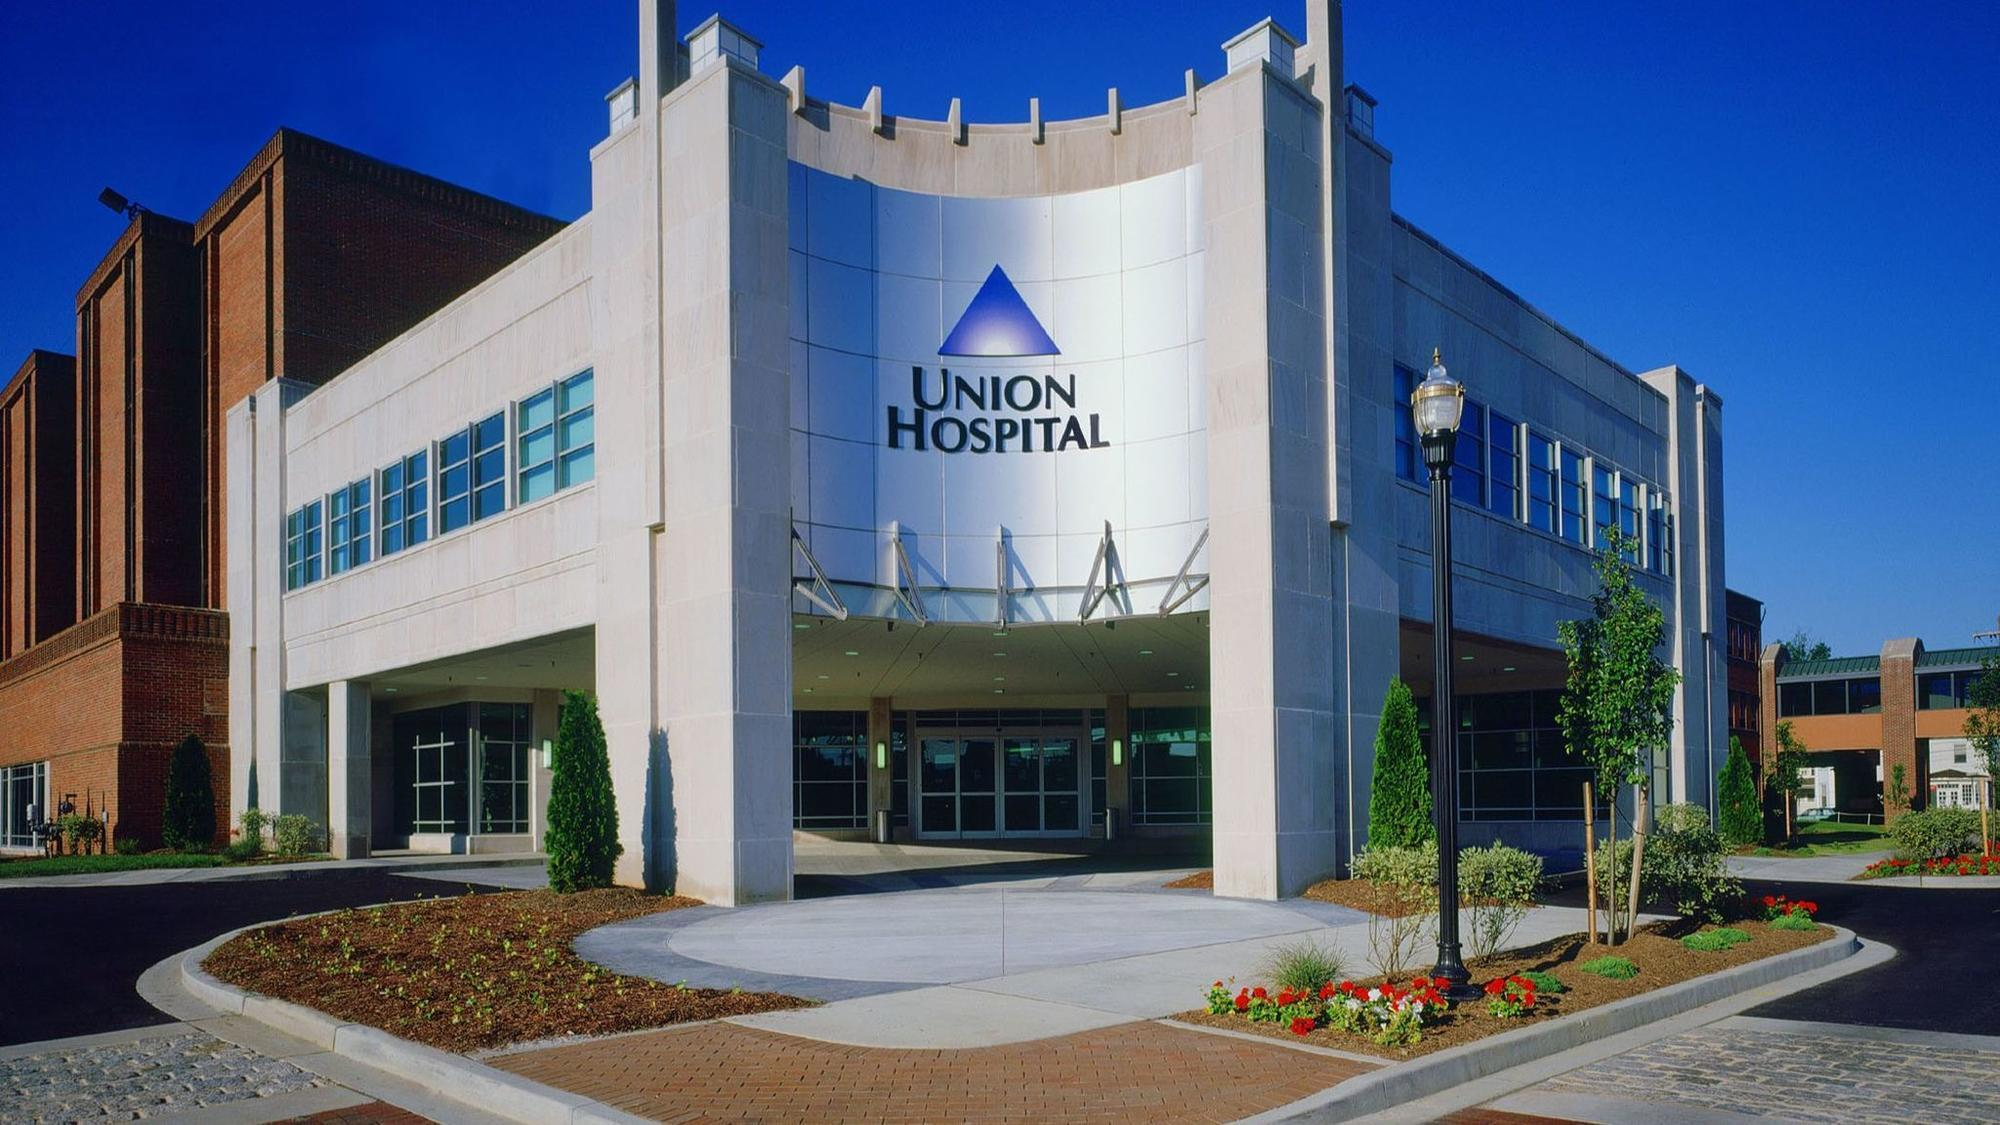 union hospital to become part of lifebridge health system